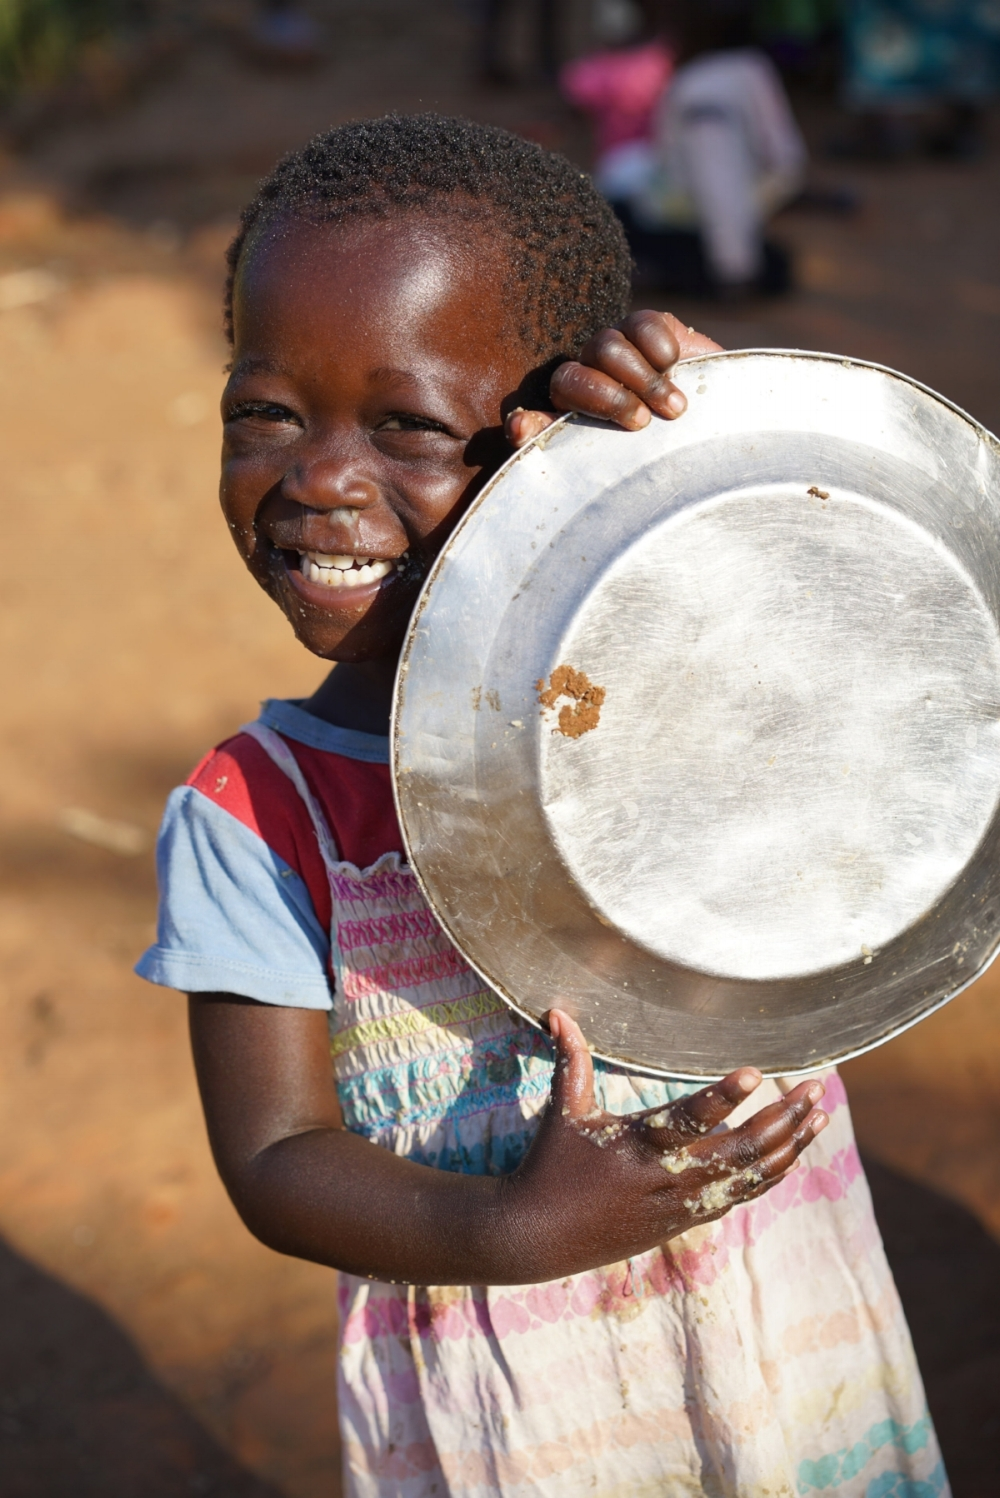 Clean plates and big smiles bring our hearts joy! Imagine how many more plates of food and smiles the future holds as we increase the Grace Center!